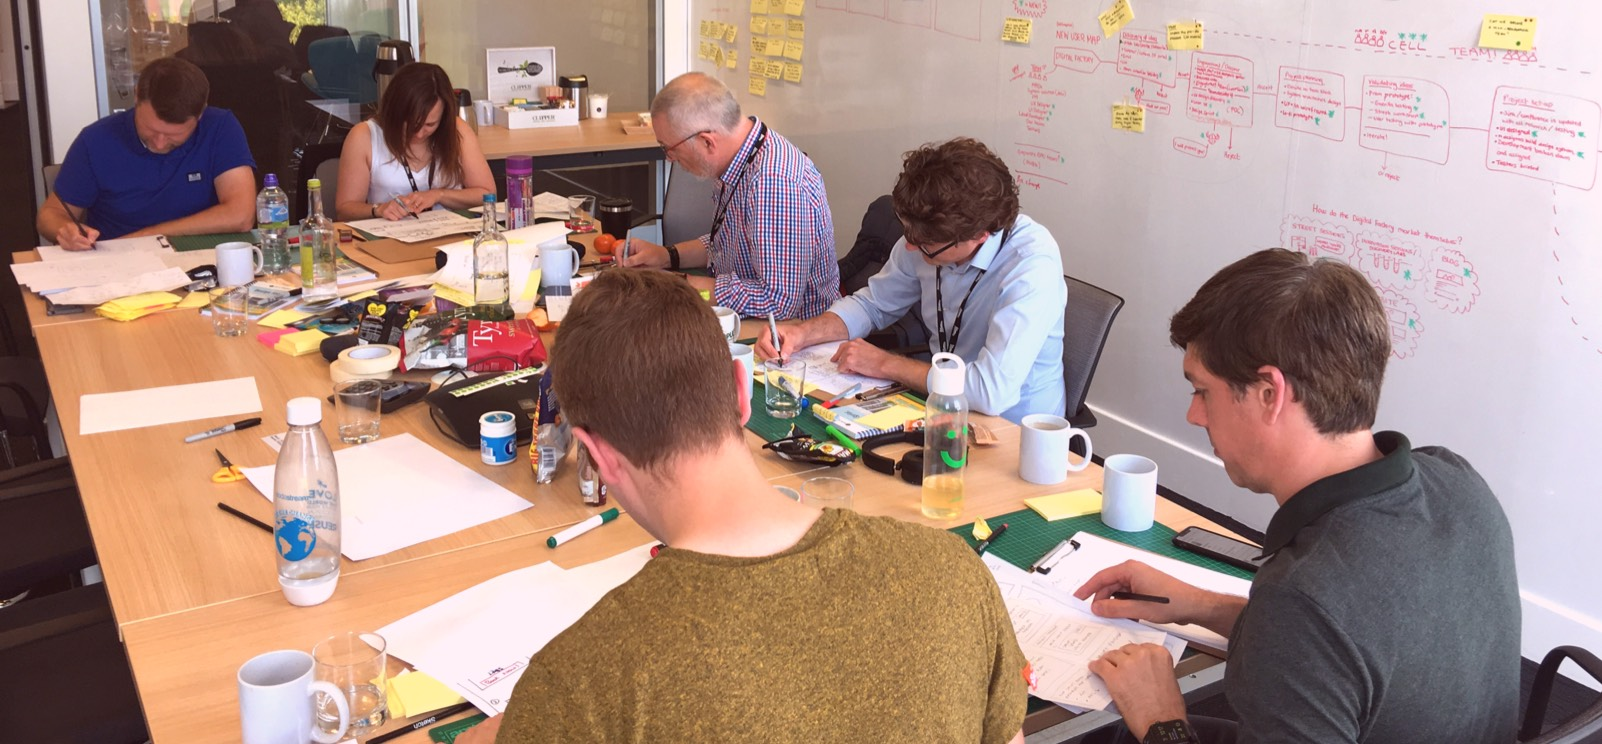 Company Structure Design Sprint